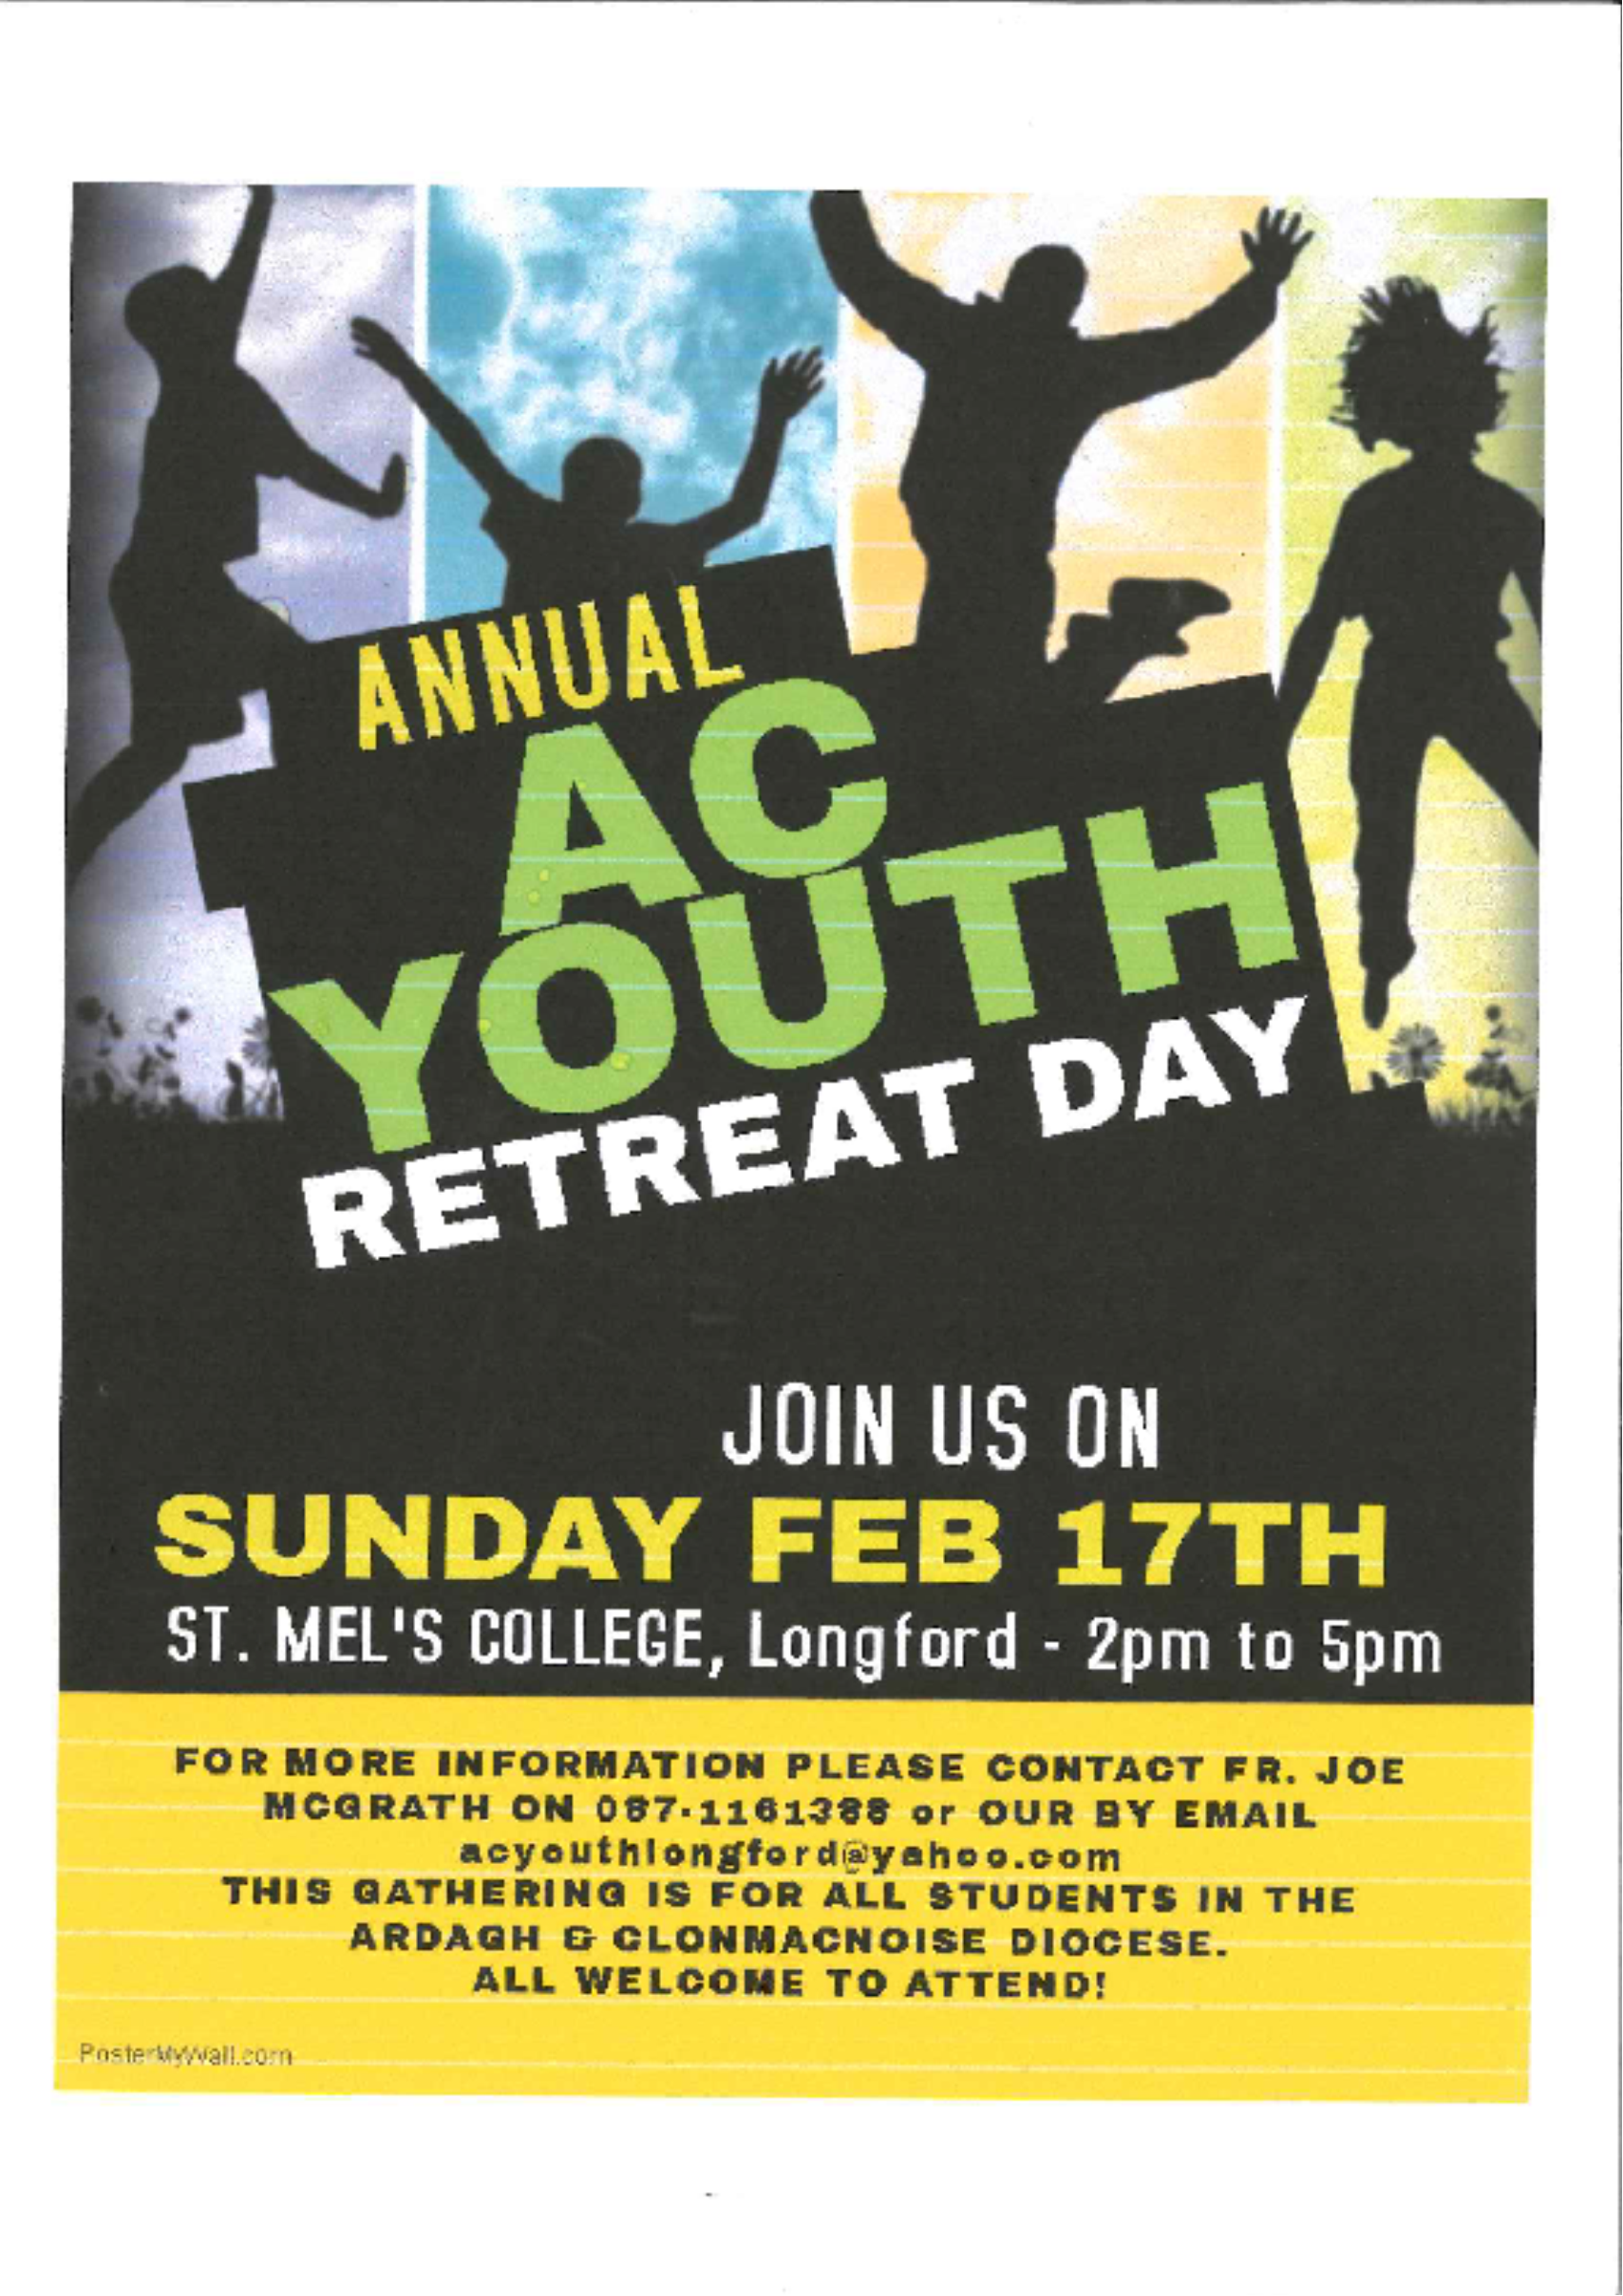 ac youth retreat day.png